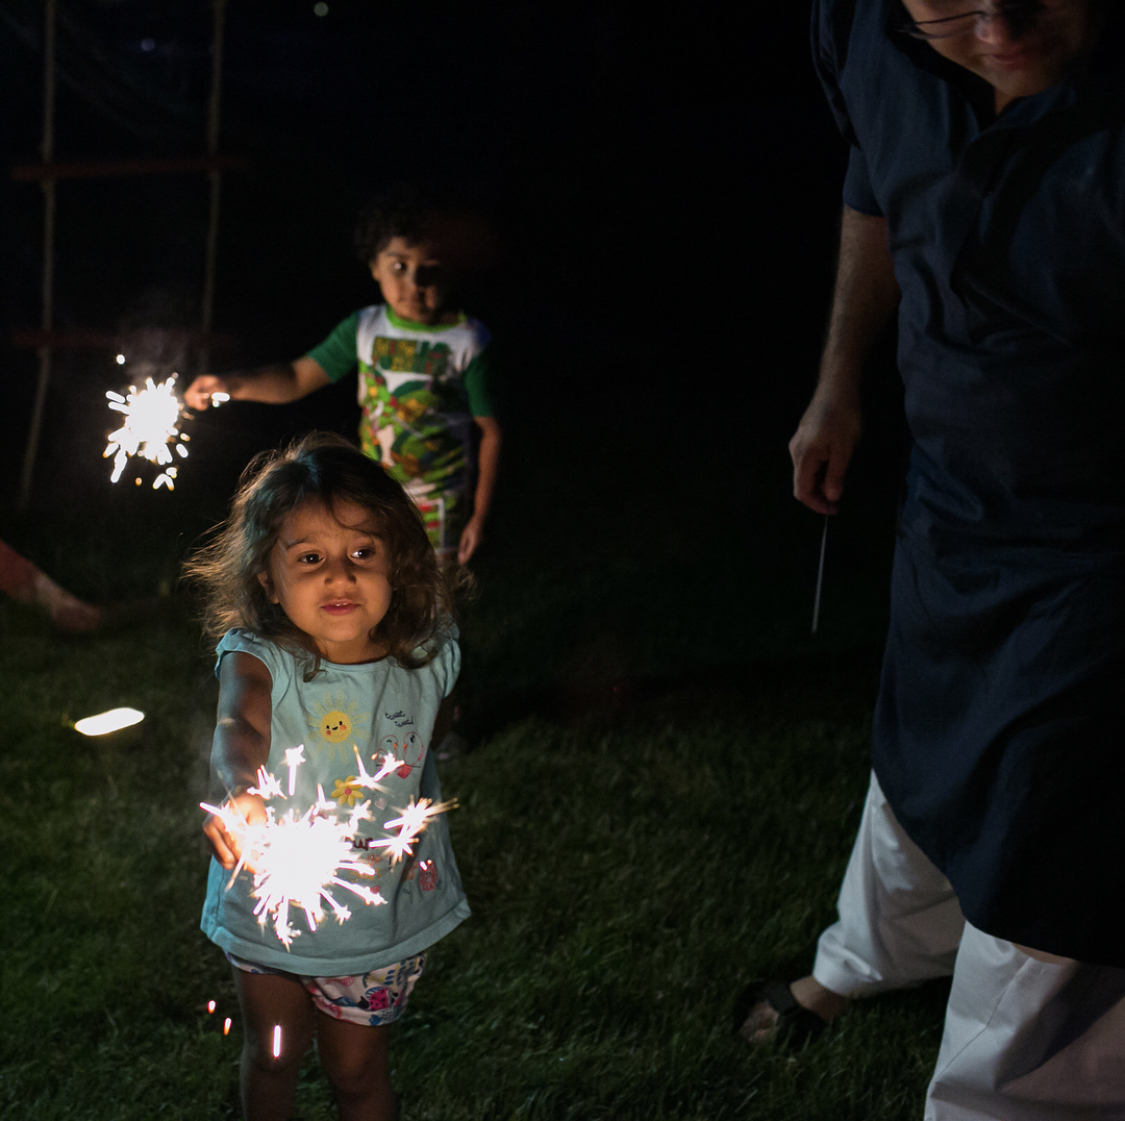 Husna and her cousin have fun with sparklers at an Eid al-Fitr celebration marking the end of Ramadan. June 25, 2017. Pic courtesy: Zoshia Minto.